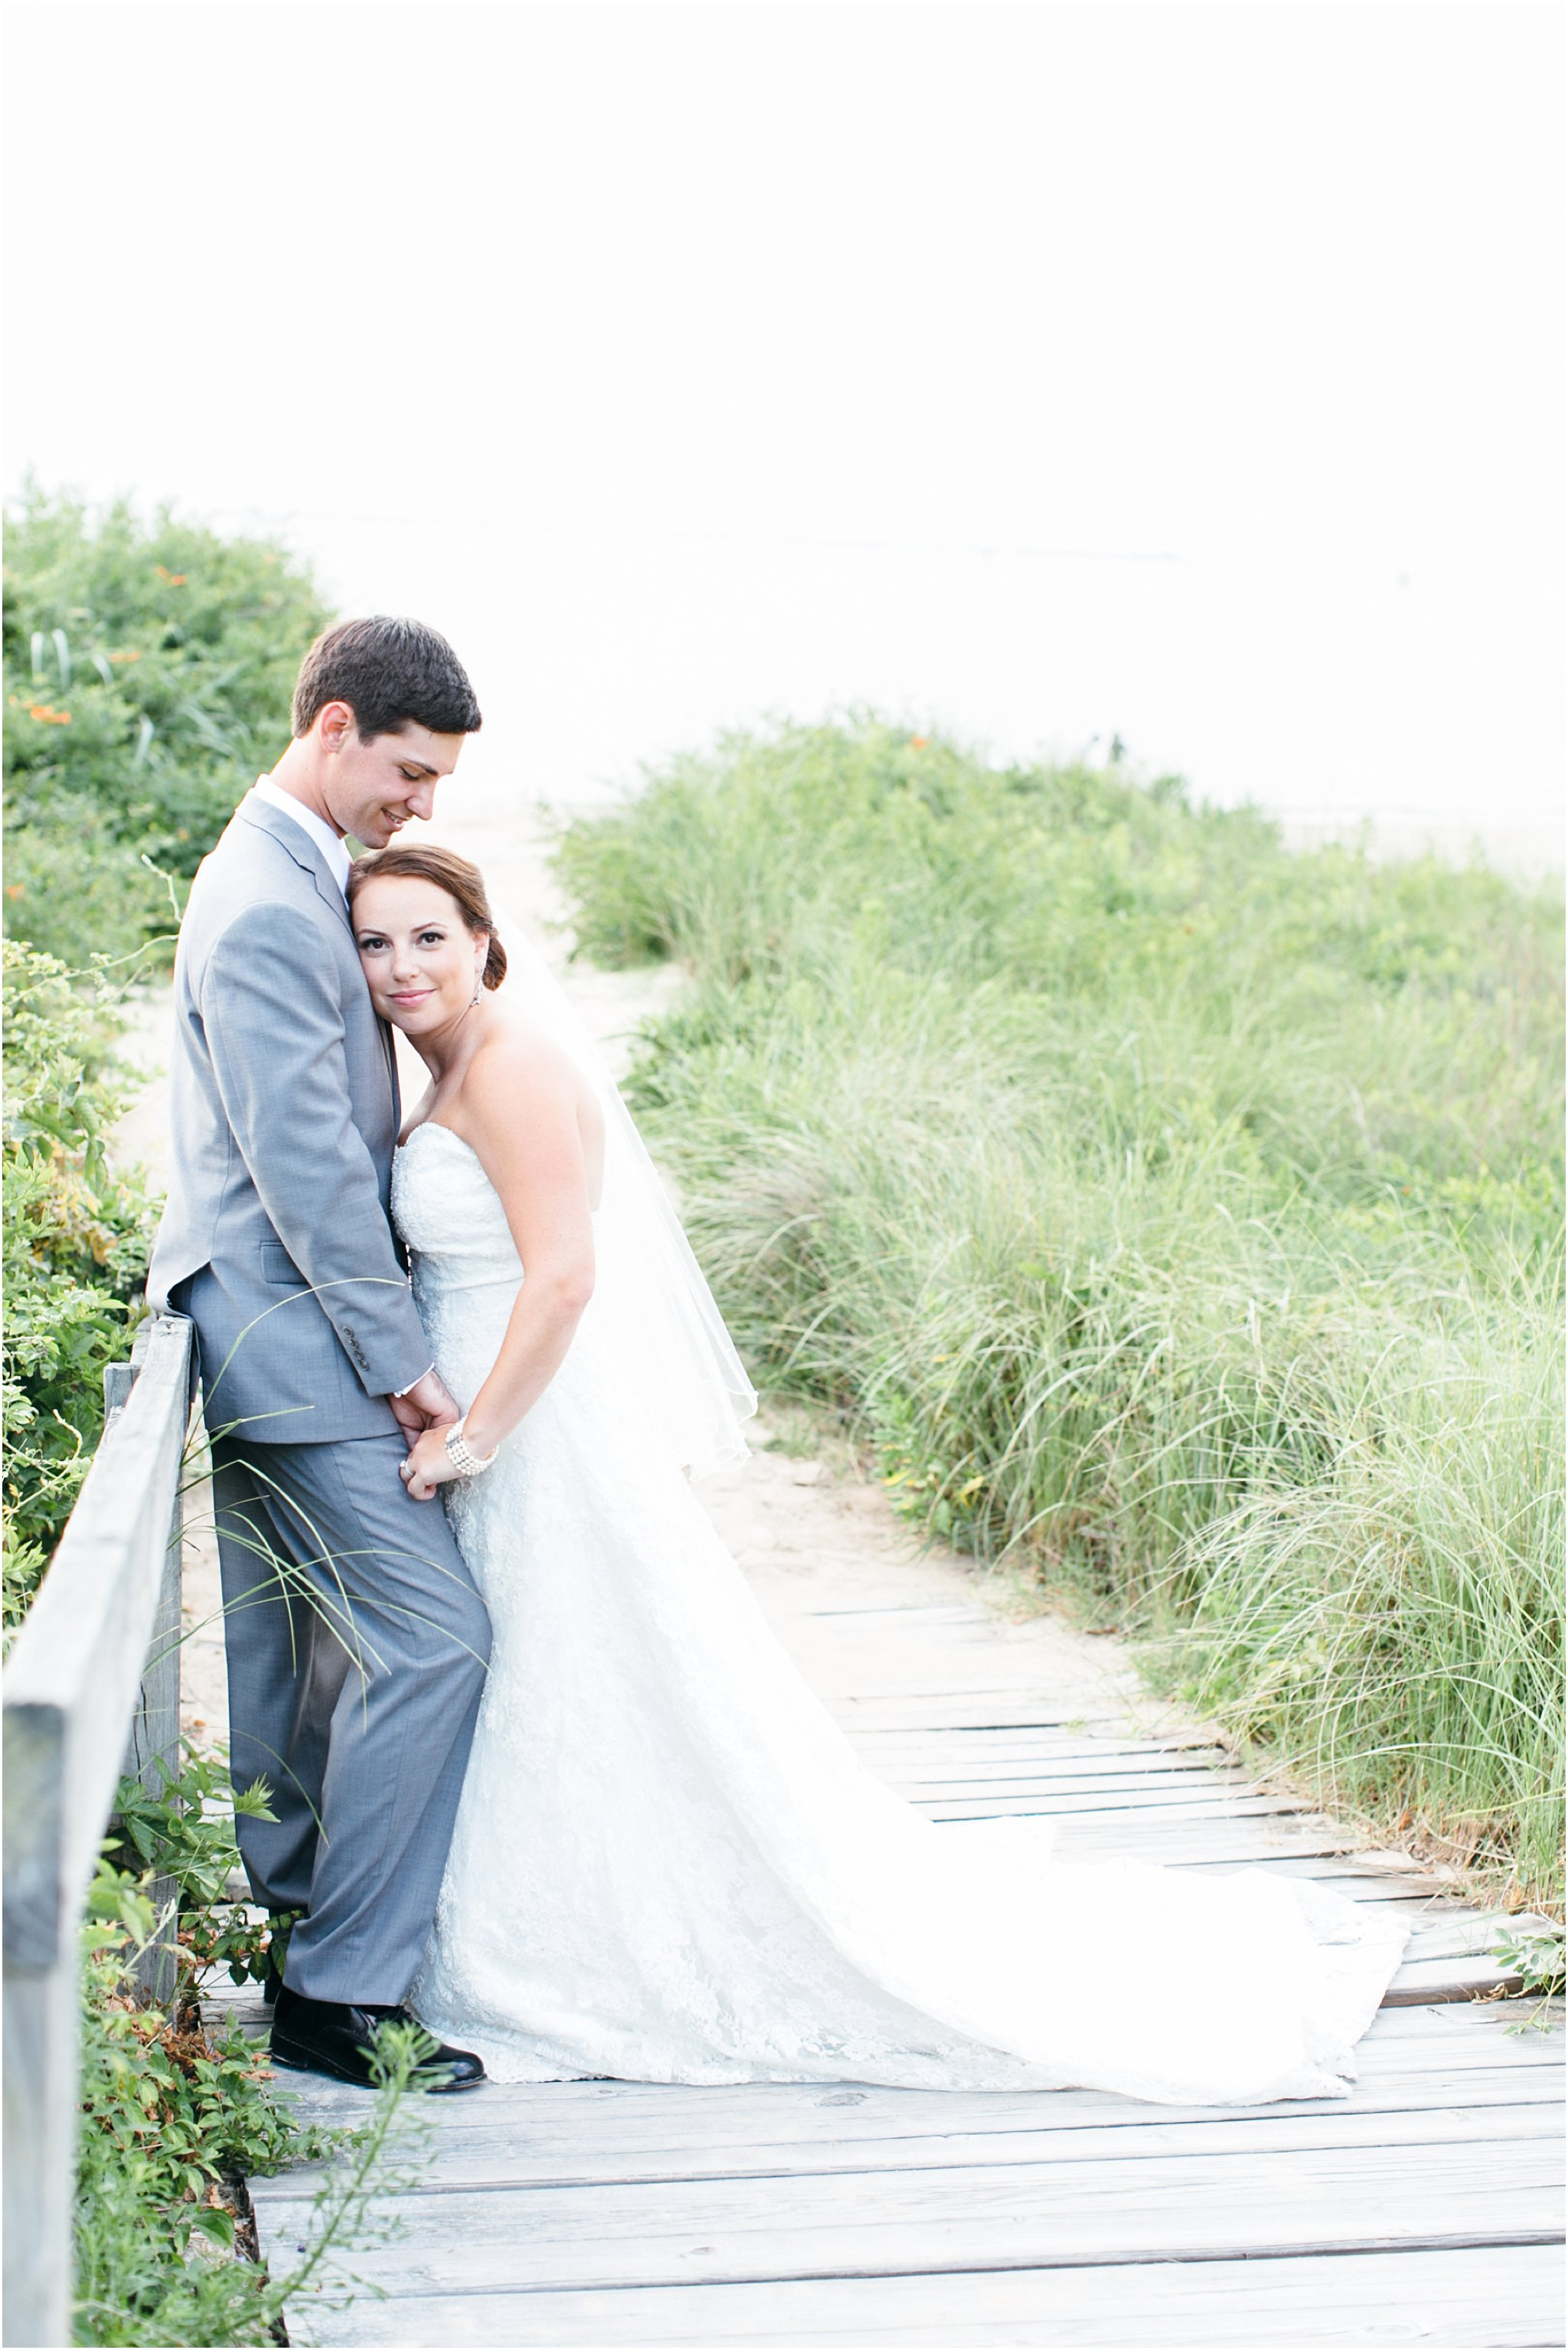 jessica_ryan_photography_wedding_photography_virginiabeach_virginia_candid_authentic_wedding_portraits_marina_shores_yacht_club_chesapeake_bay_1906